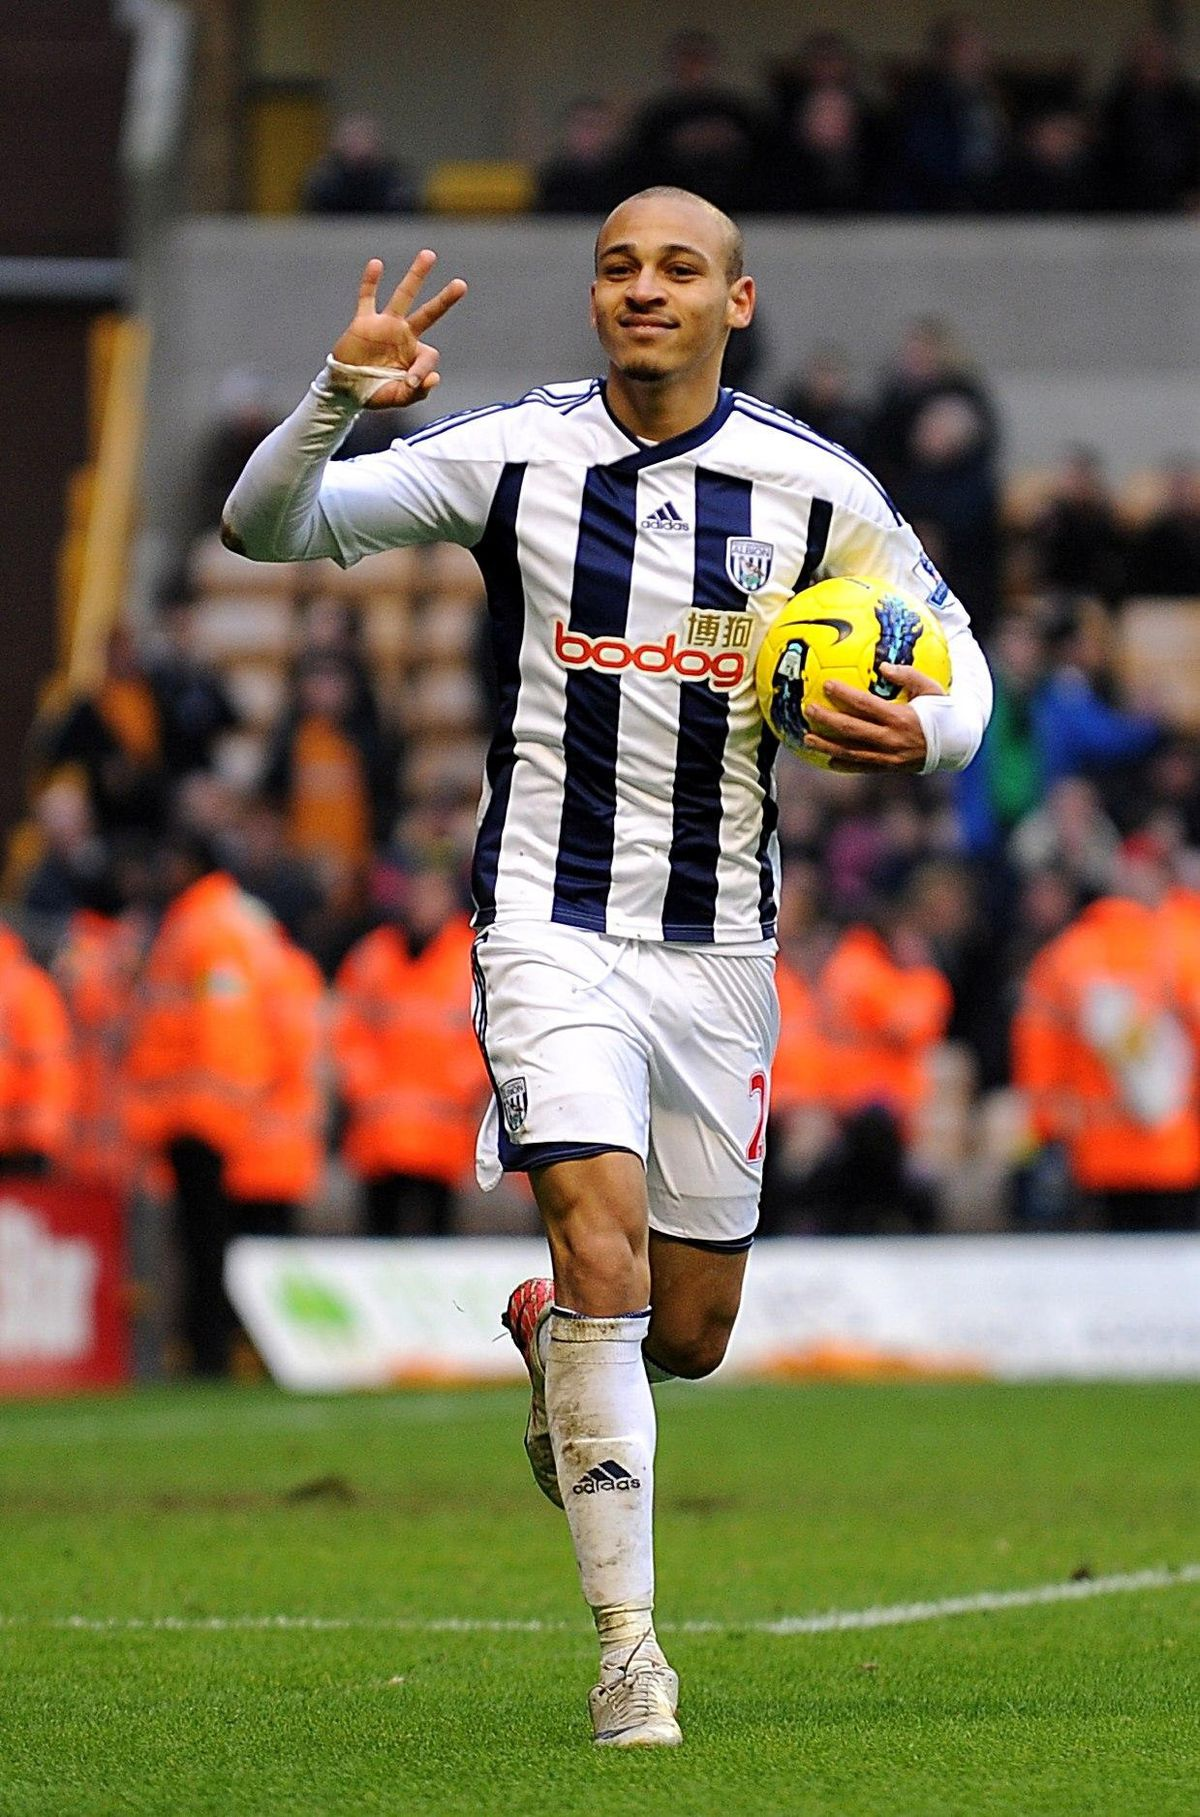 West Bromwich Albion's Peter Odemwingie celebrates completing his hat-trick and scoring his sides fifth goal during the Barclays Premier League match at the Molineux.